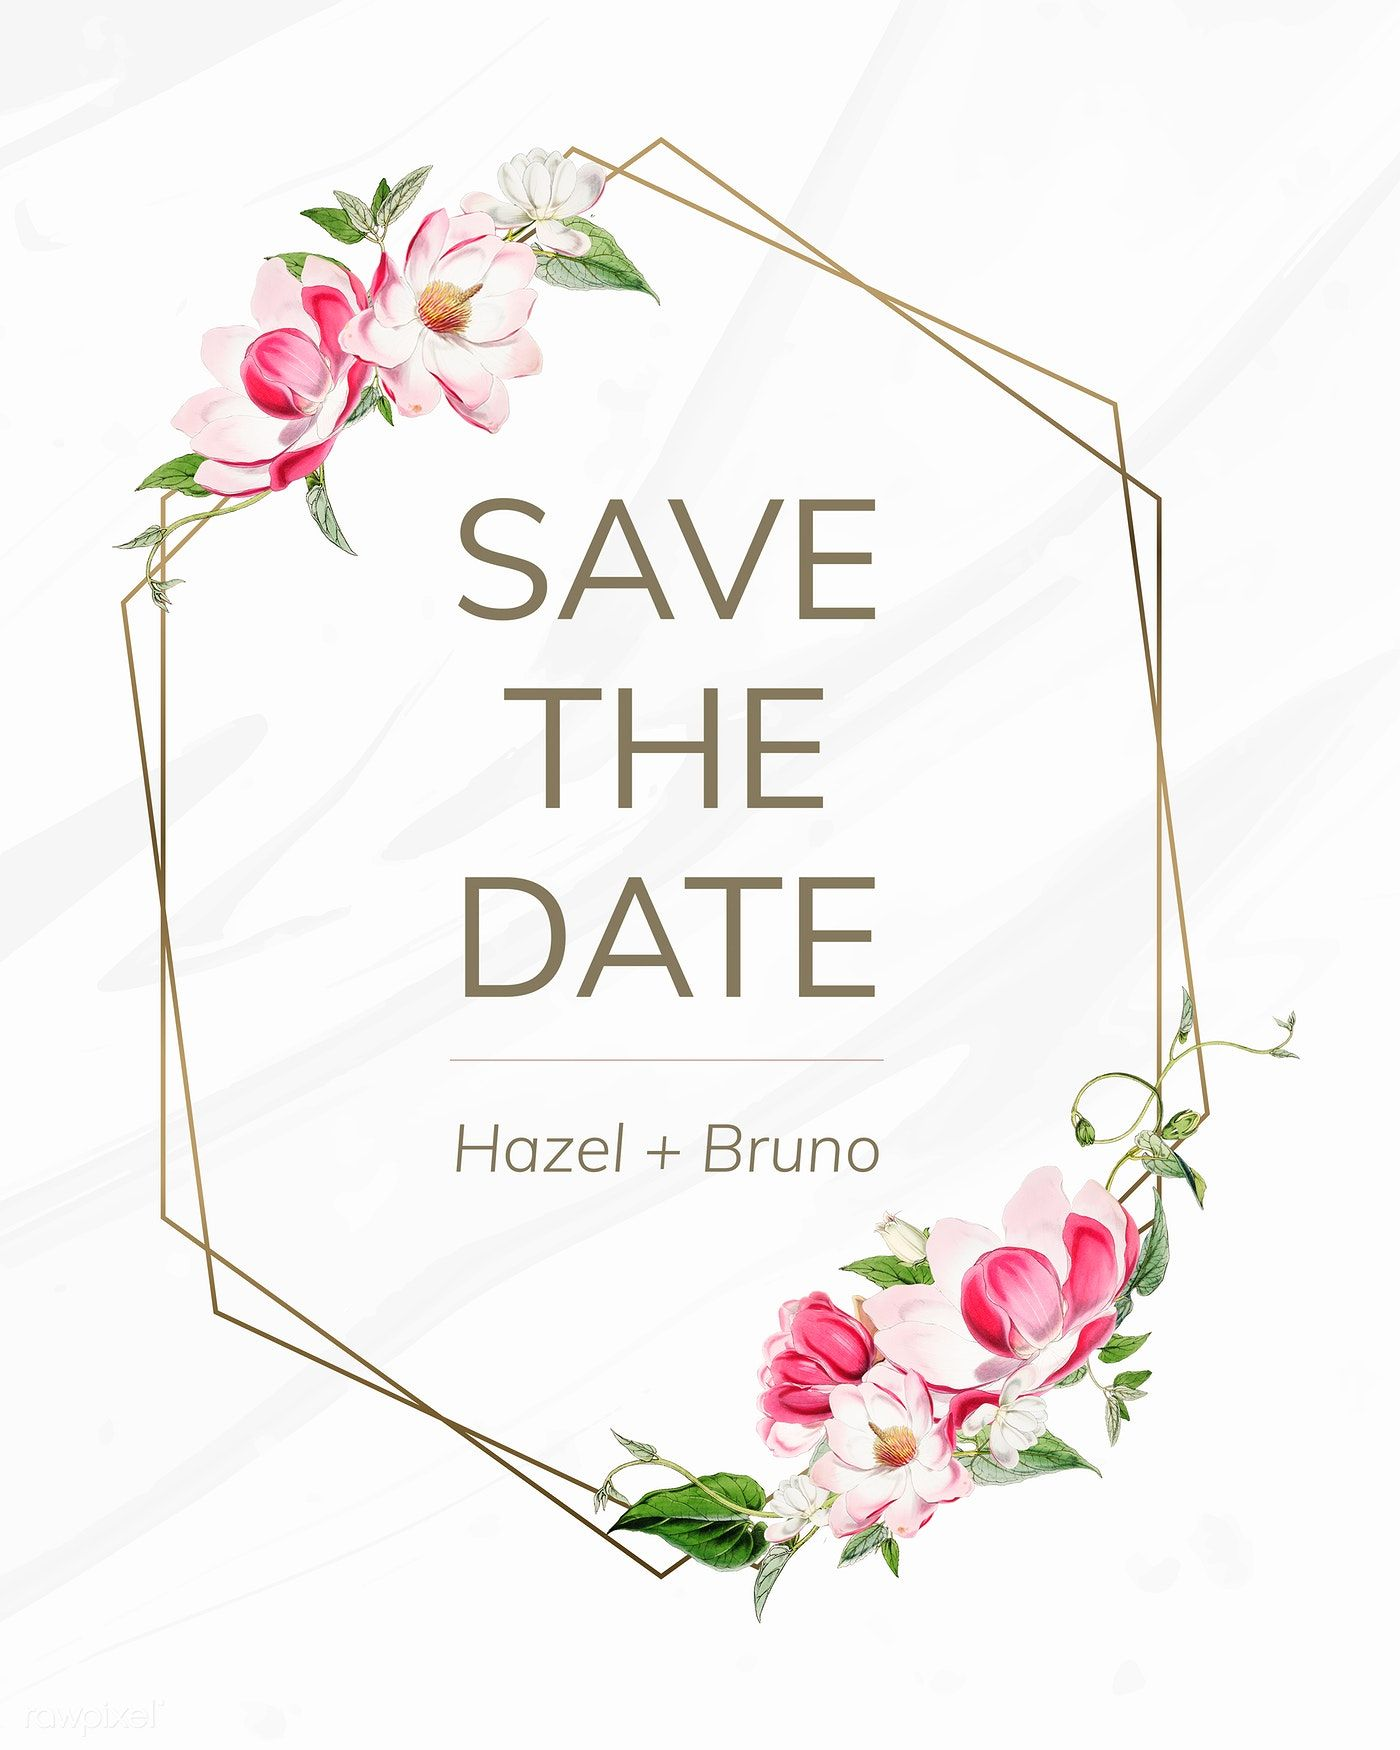 Download premium illustration of Save the date wedding